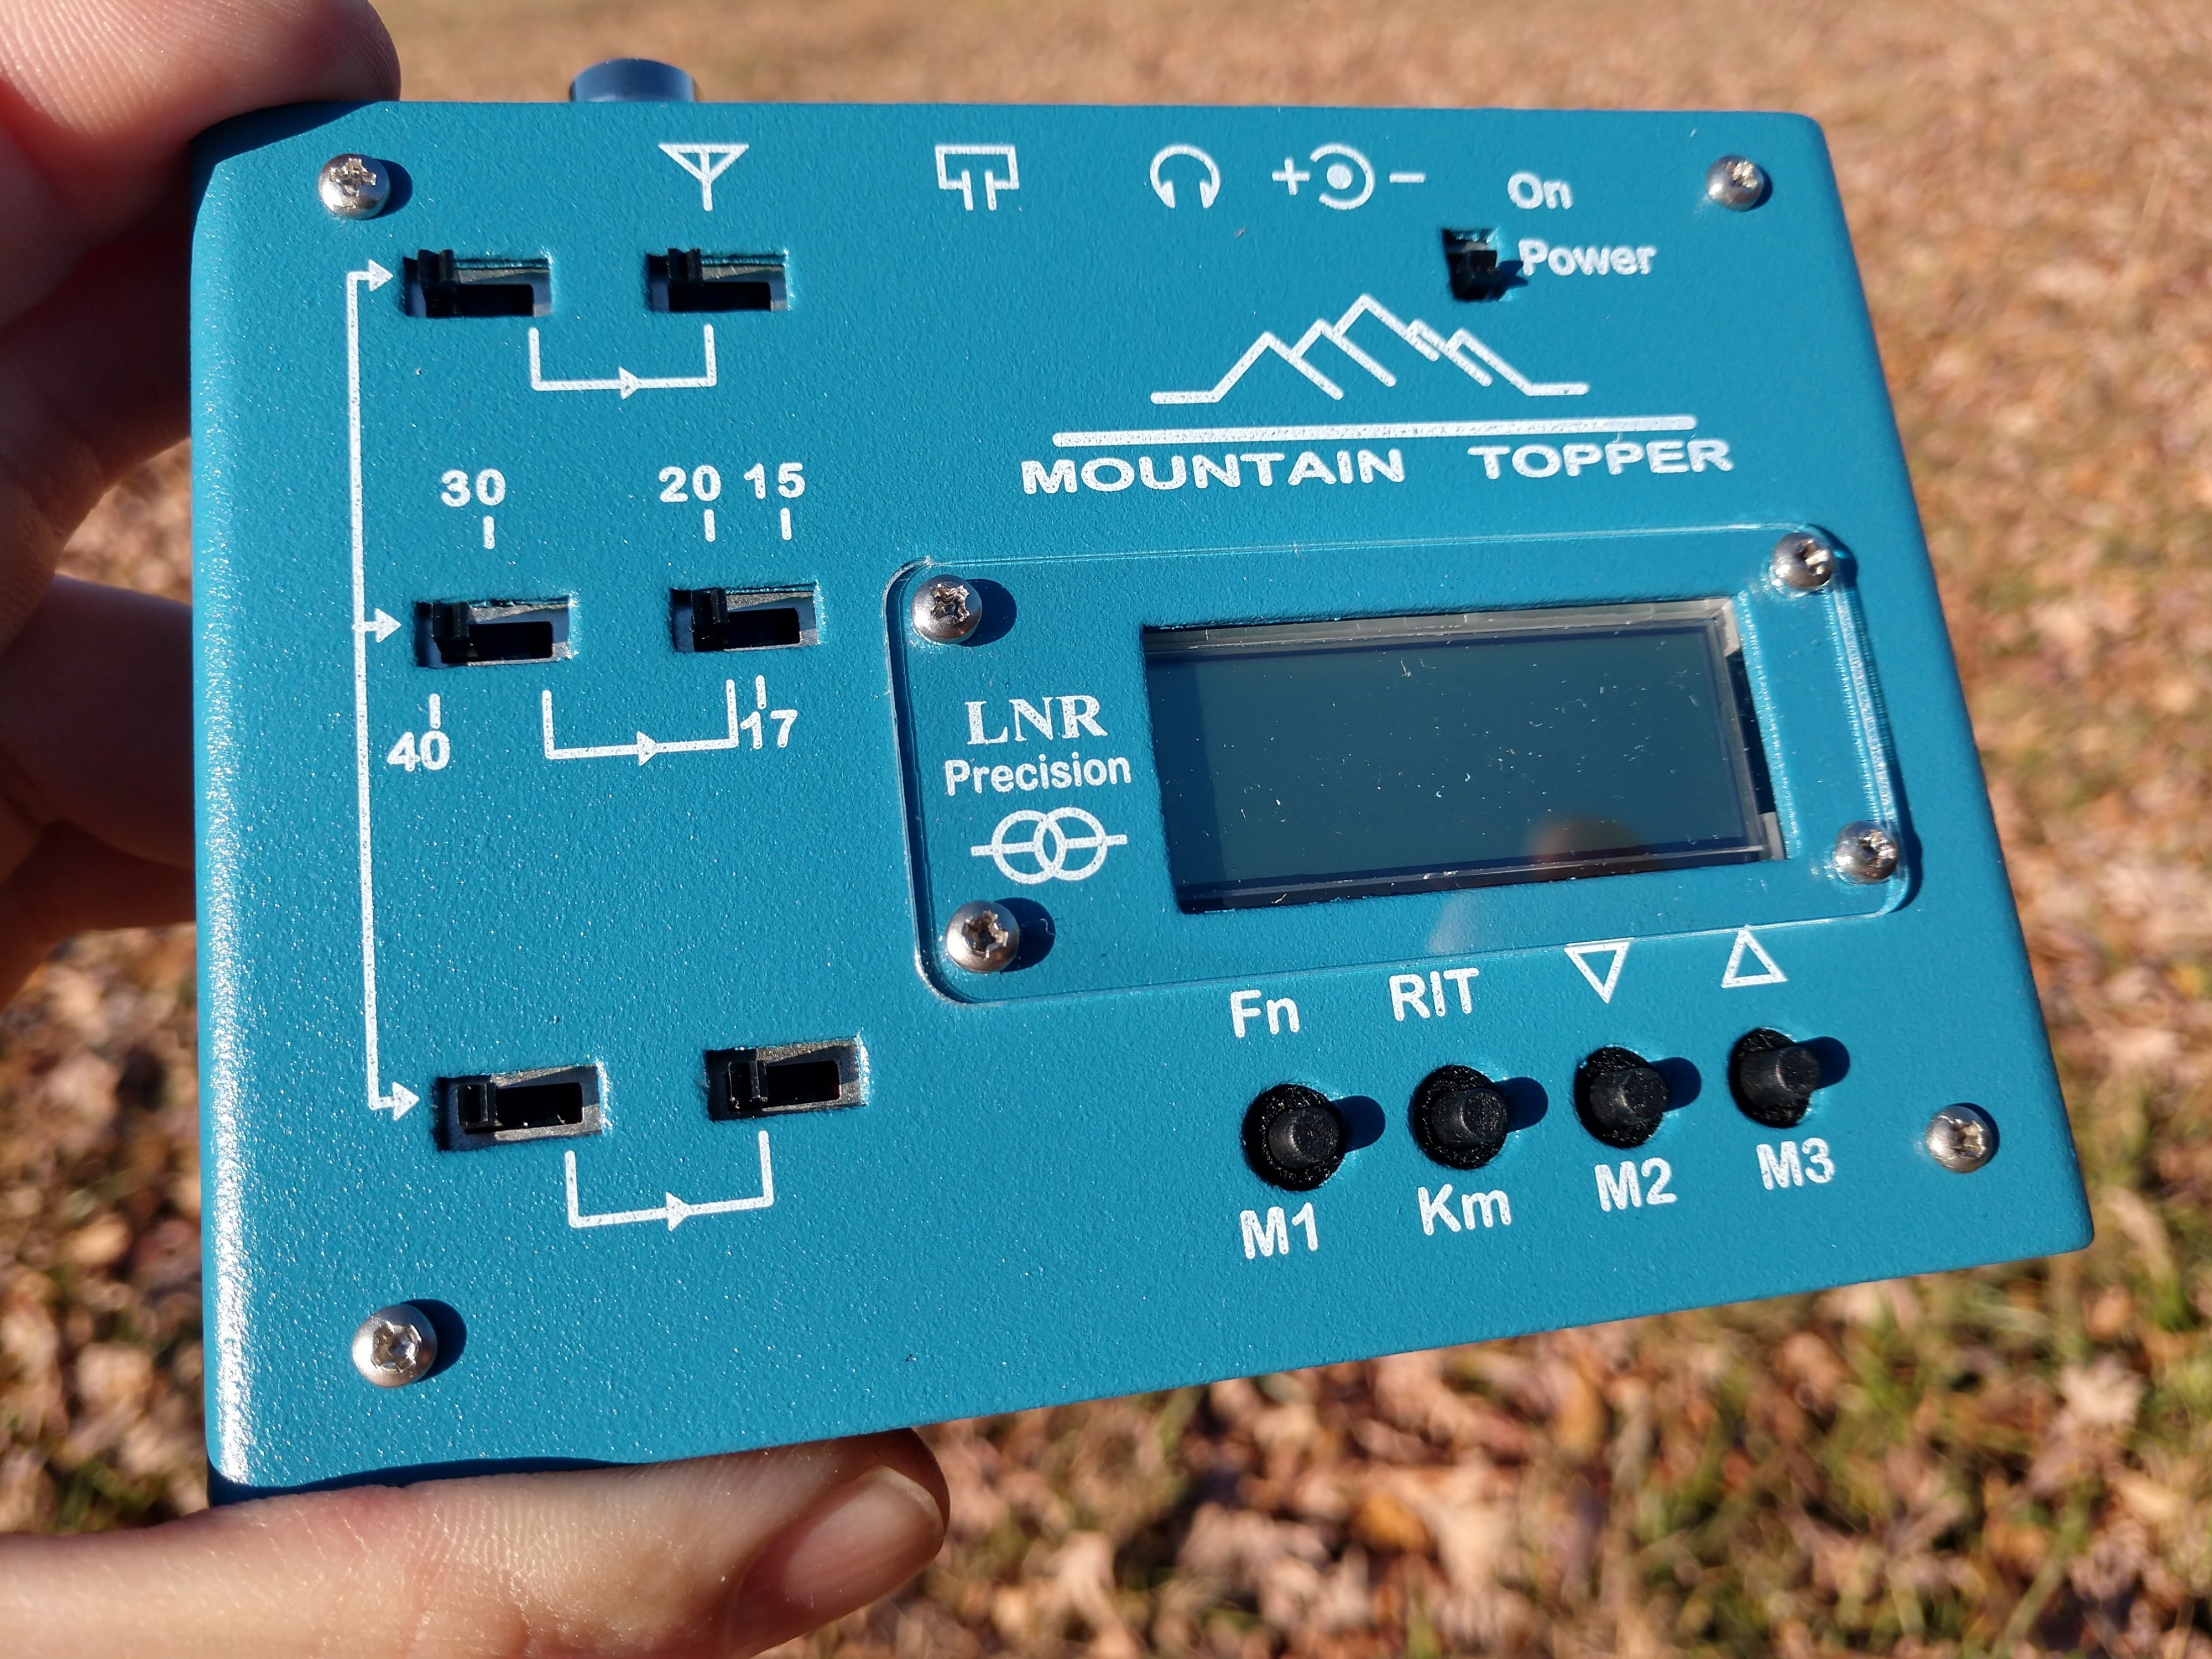 MTR5B Mountain Topper - Modified Kit Version 00059